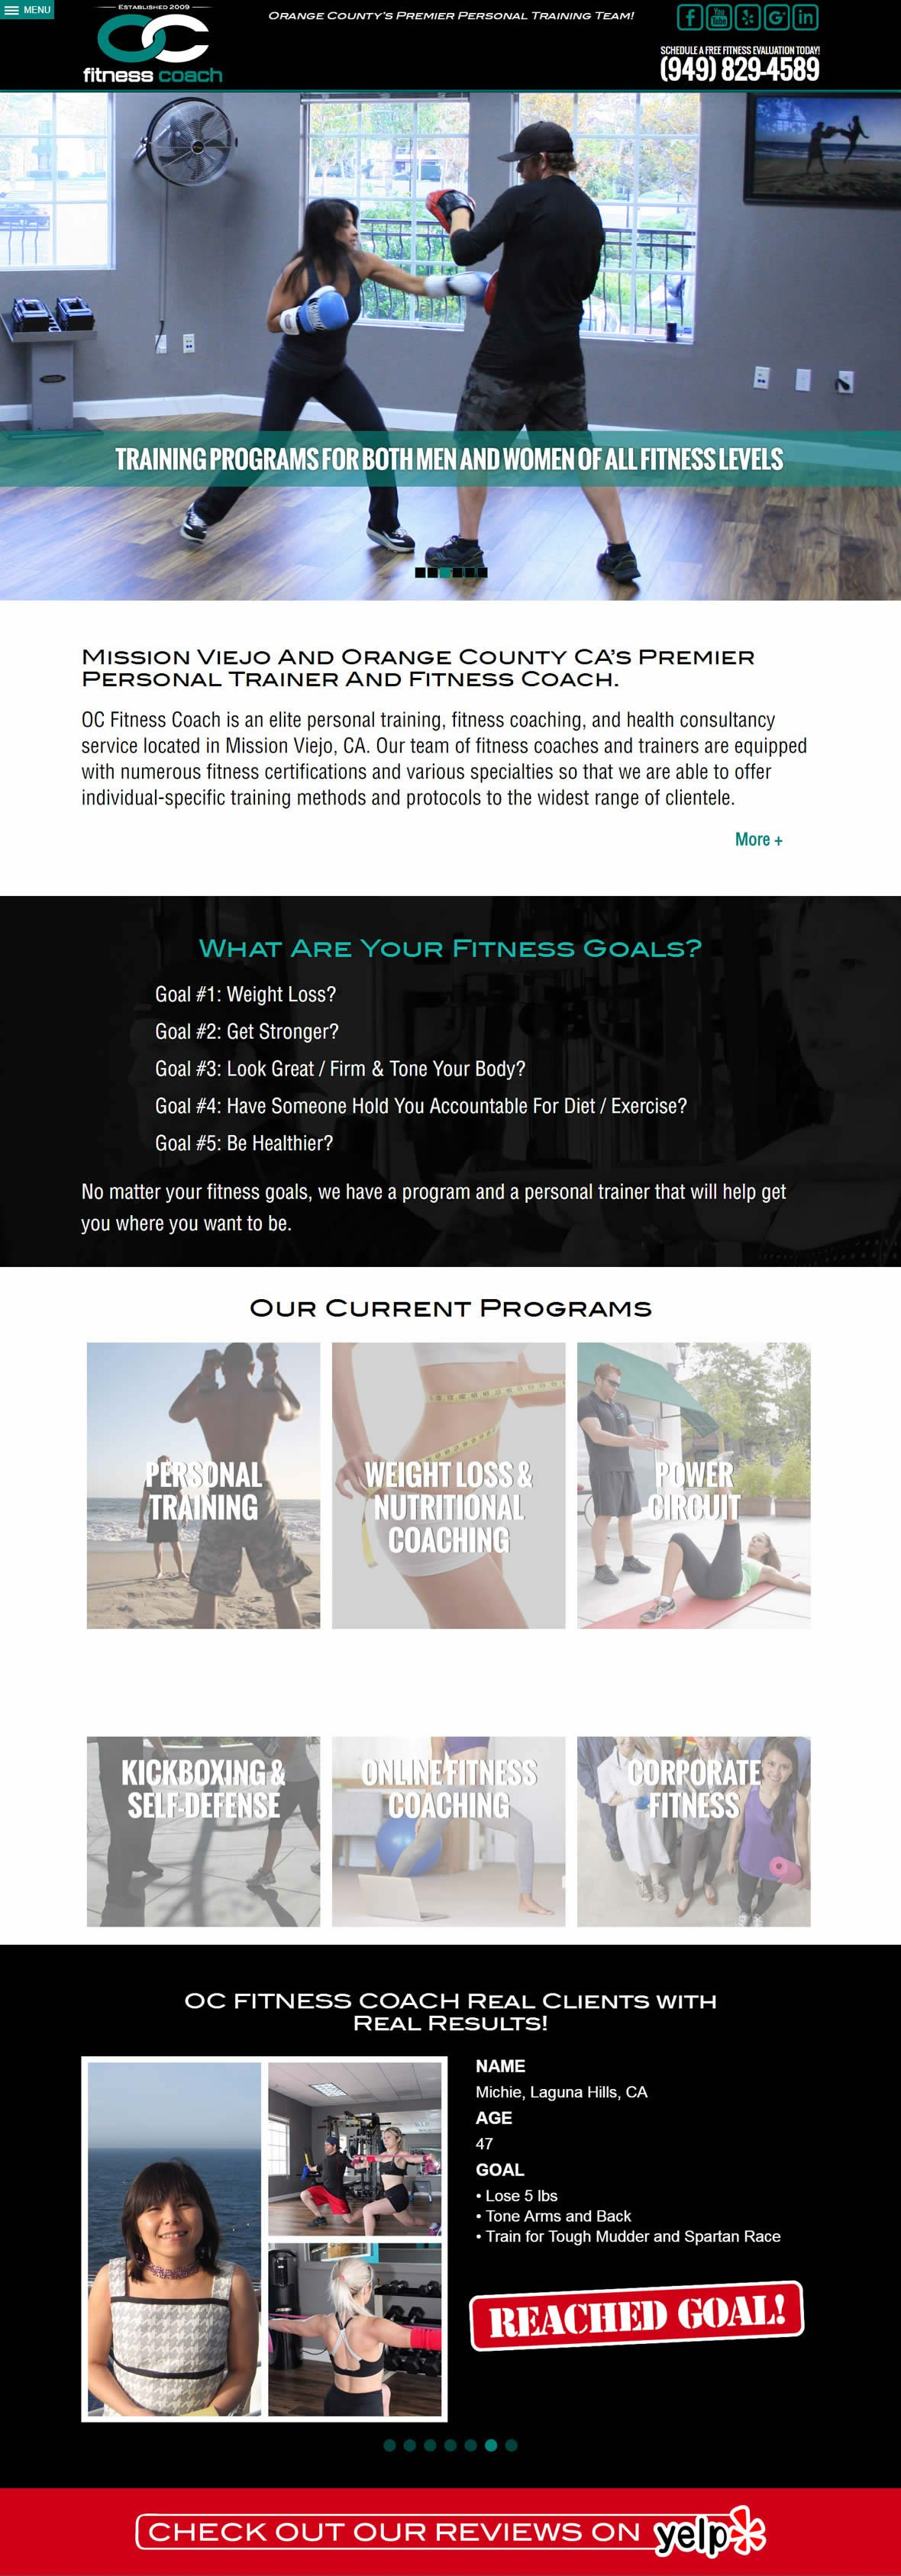 fitness-wordpress-cms-website-1